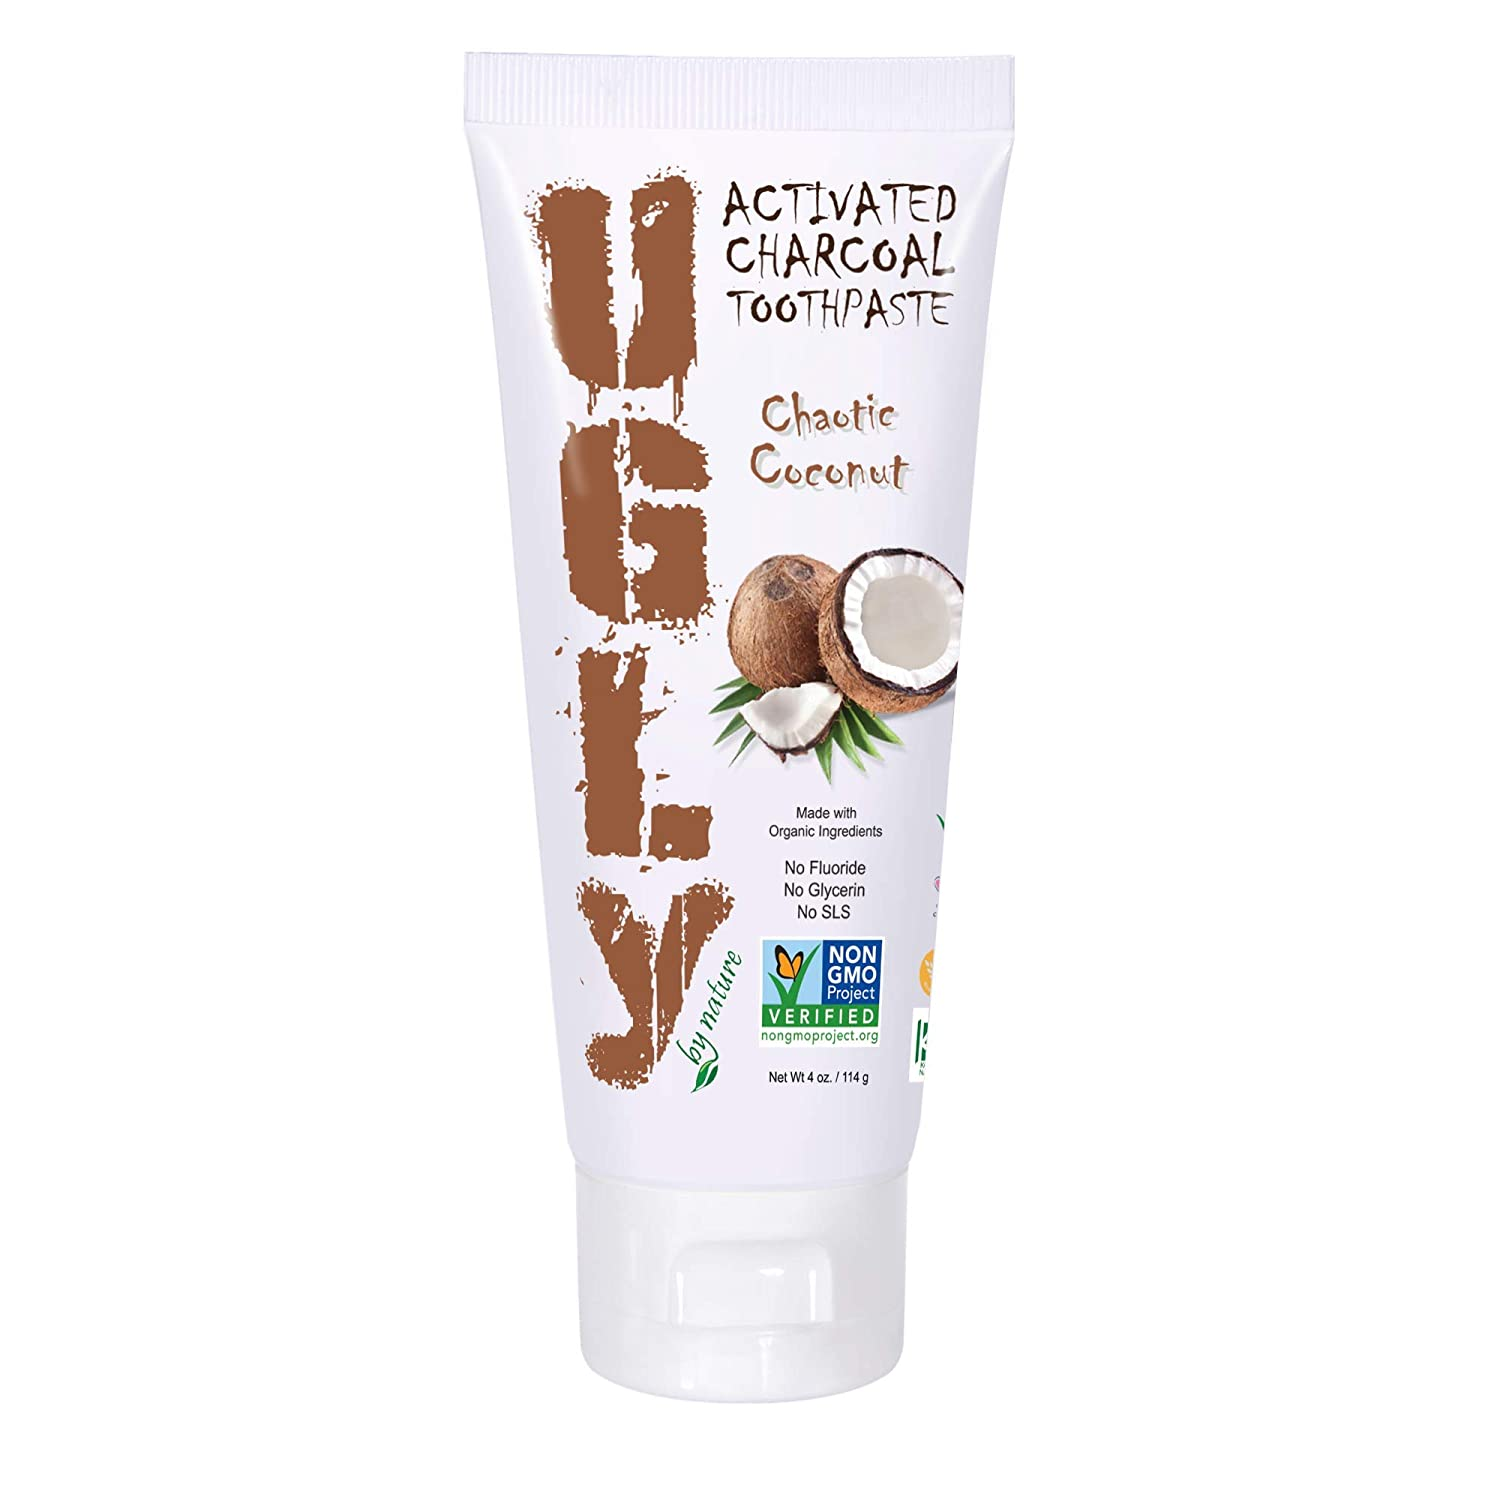 UGLY BY NATURE Fluoride Free Toothpaste, Chaotic Coconut - Natural Toothpaste with Organic Ingredients for Whiter Teeth & Fresh Breath, Vegan, Non-GMO 4 oz